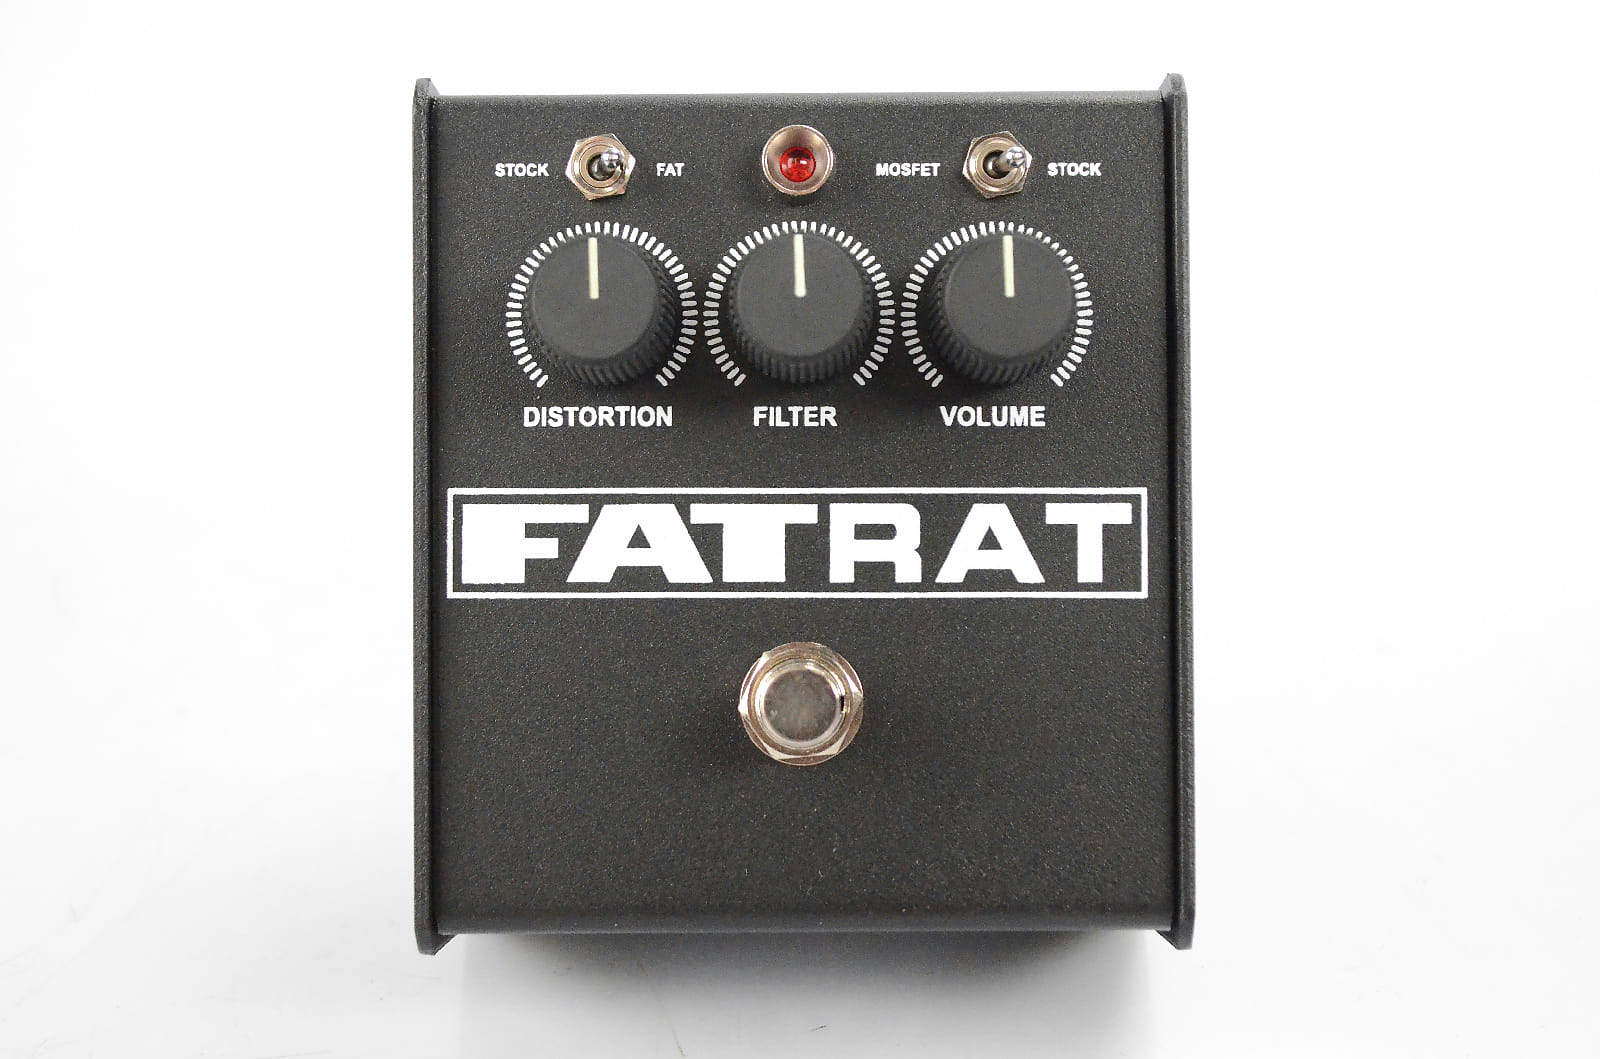 the fat rat